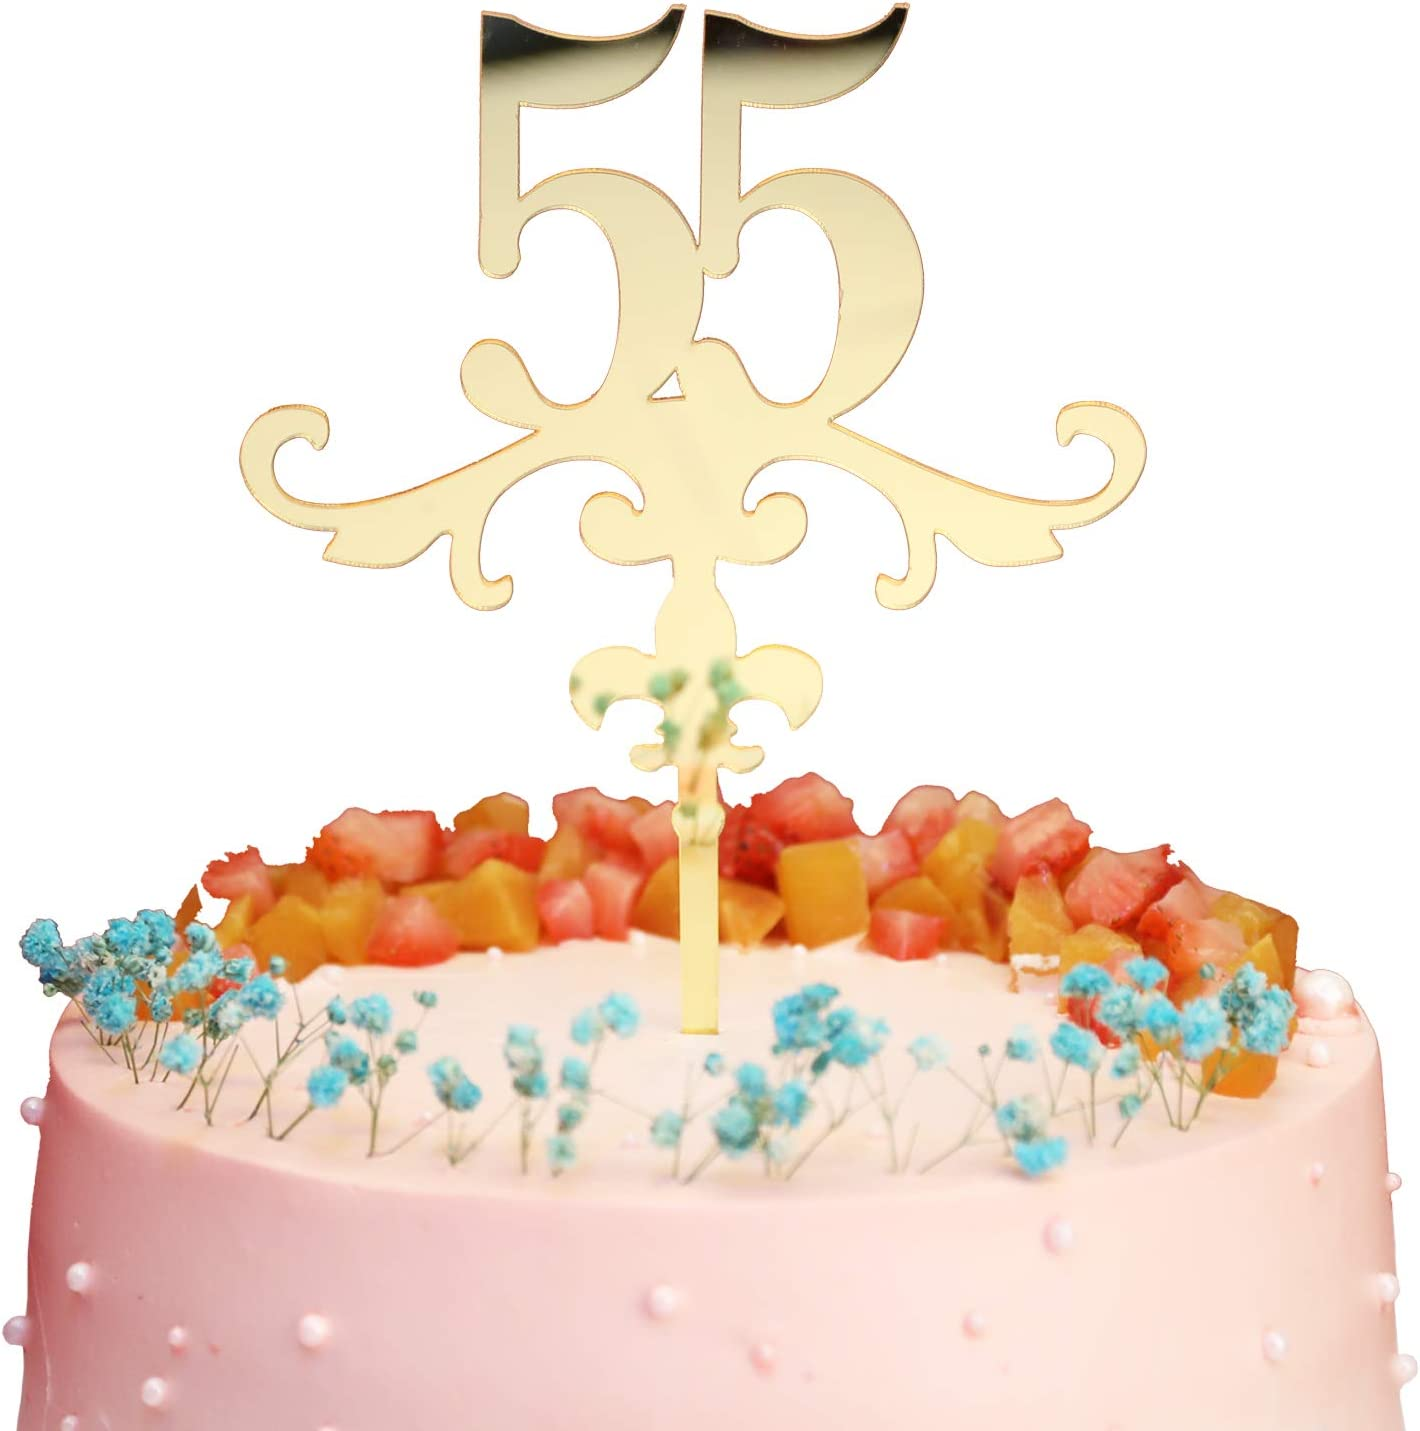 Ideal for 51th Birthday or Anniversary Celebration Mirror Gold Number 51 Cake Topper Acrylic Cake Topper